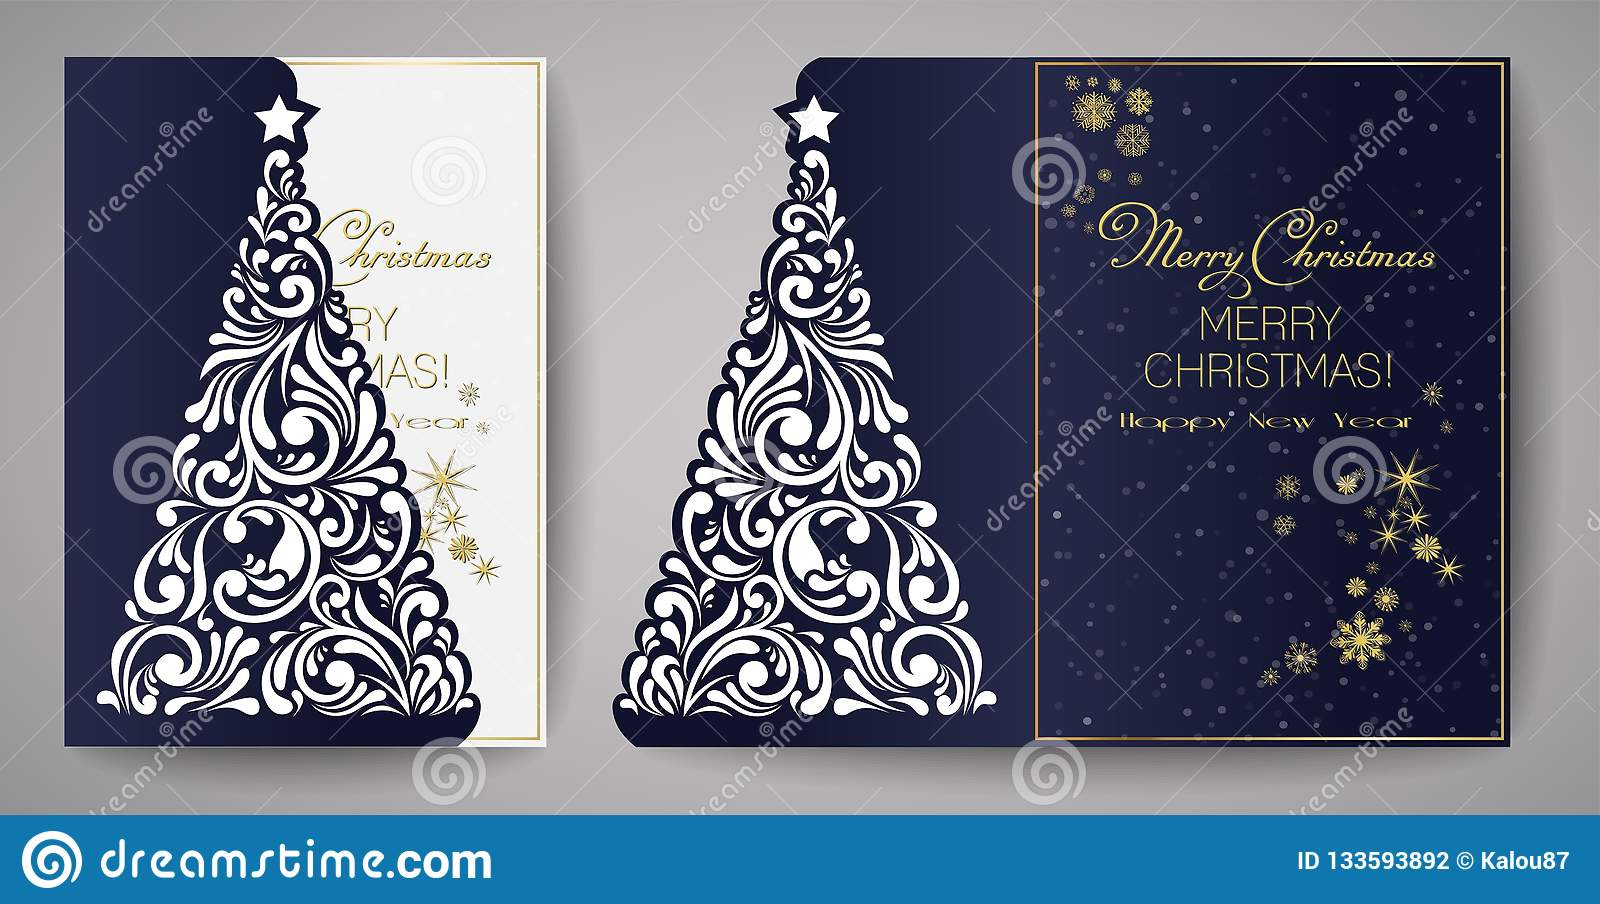 Christmas Cutout Patterns.Laser Cut Template For Christmas Cards Square Invitation